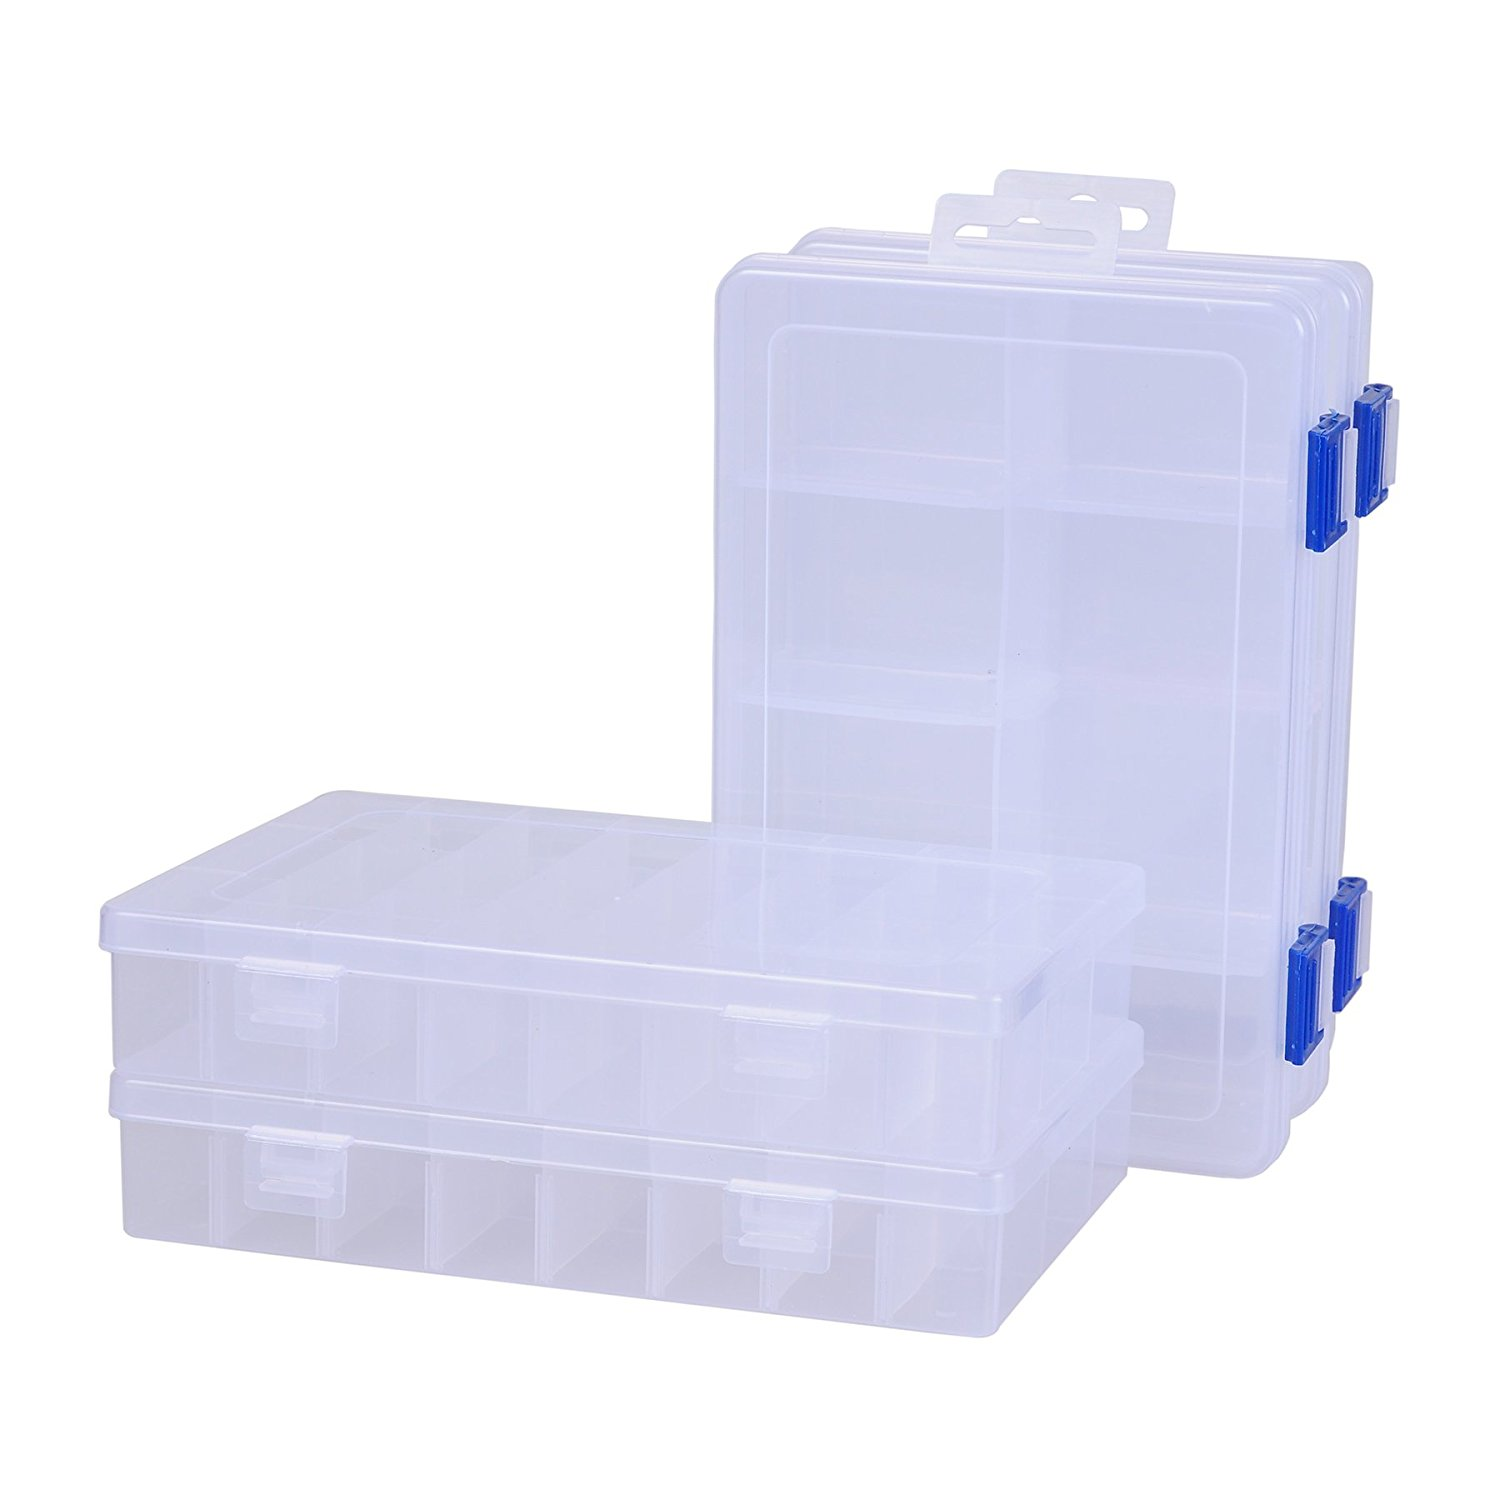 ECROCY Pack of 4 Plastic Tool Box Organizer